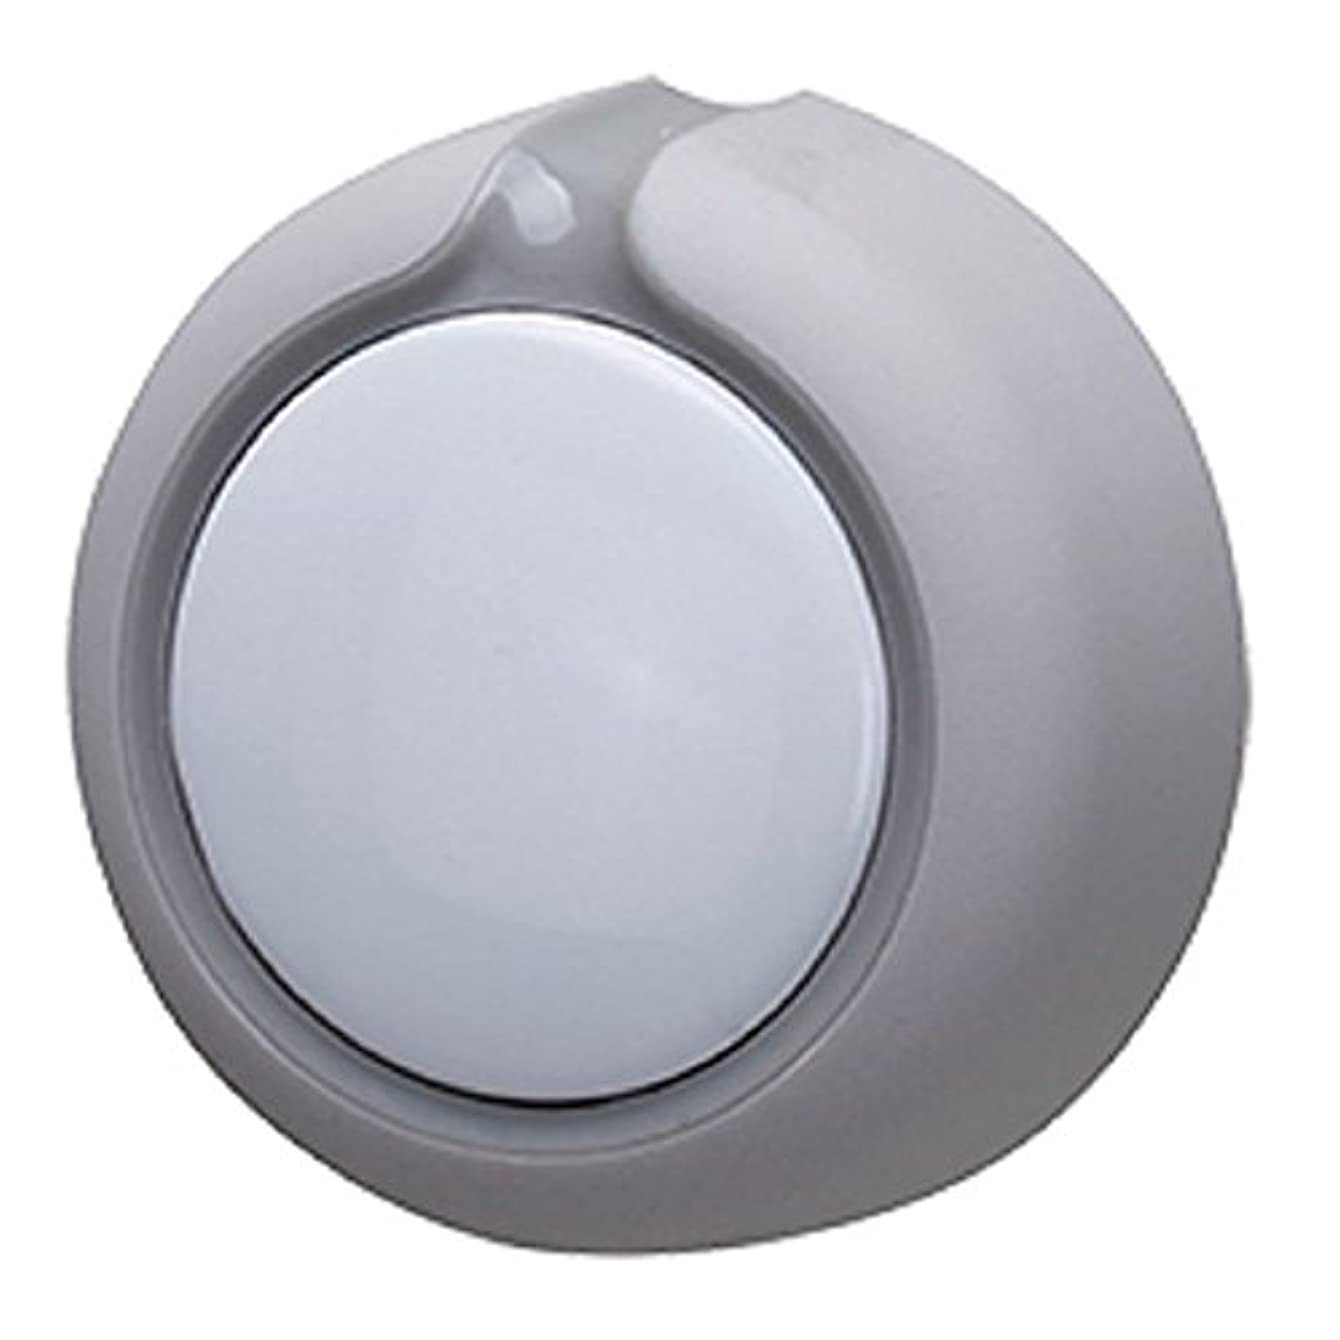 WP3957799 NON OEM REPLACEMENT FOR WHIRLPOOL WASHER/DRYER - KNOB - CONTROL - 3957799